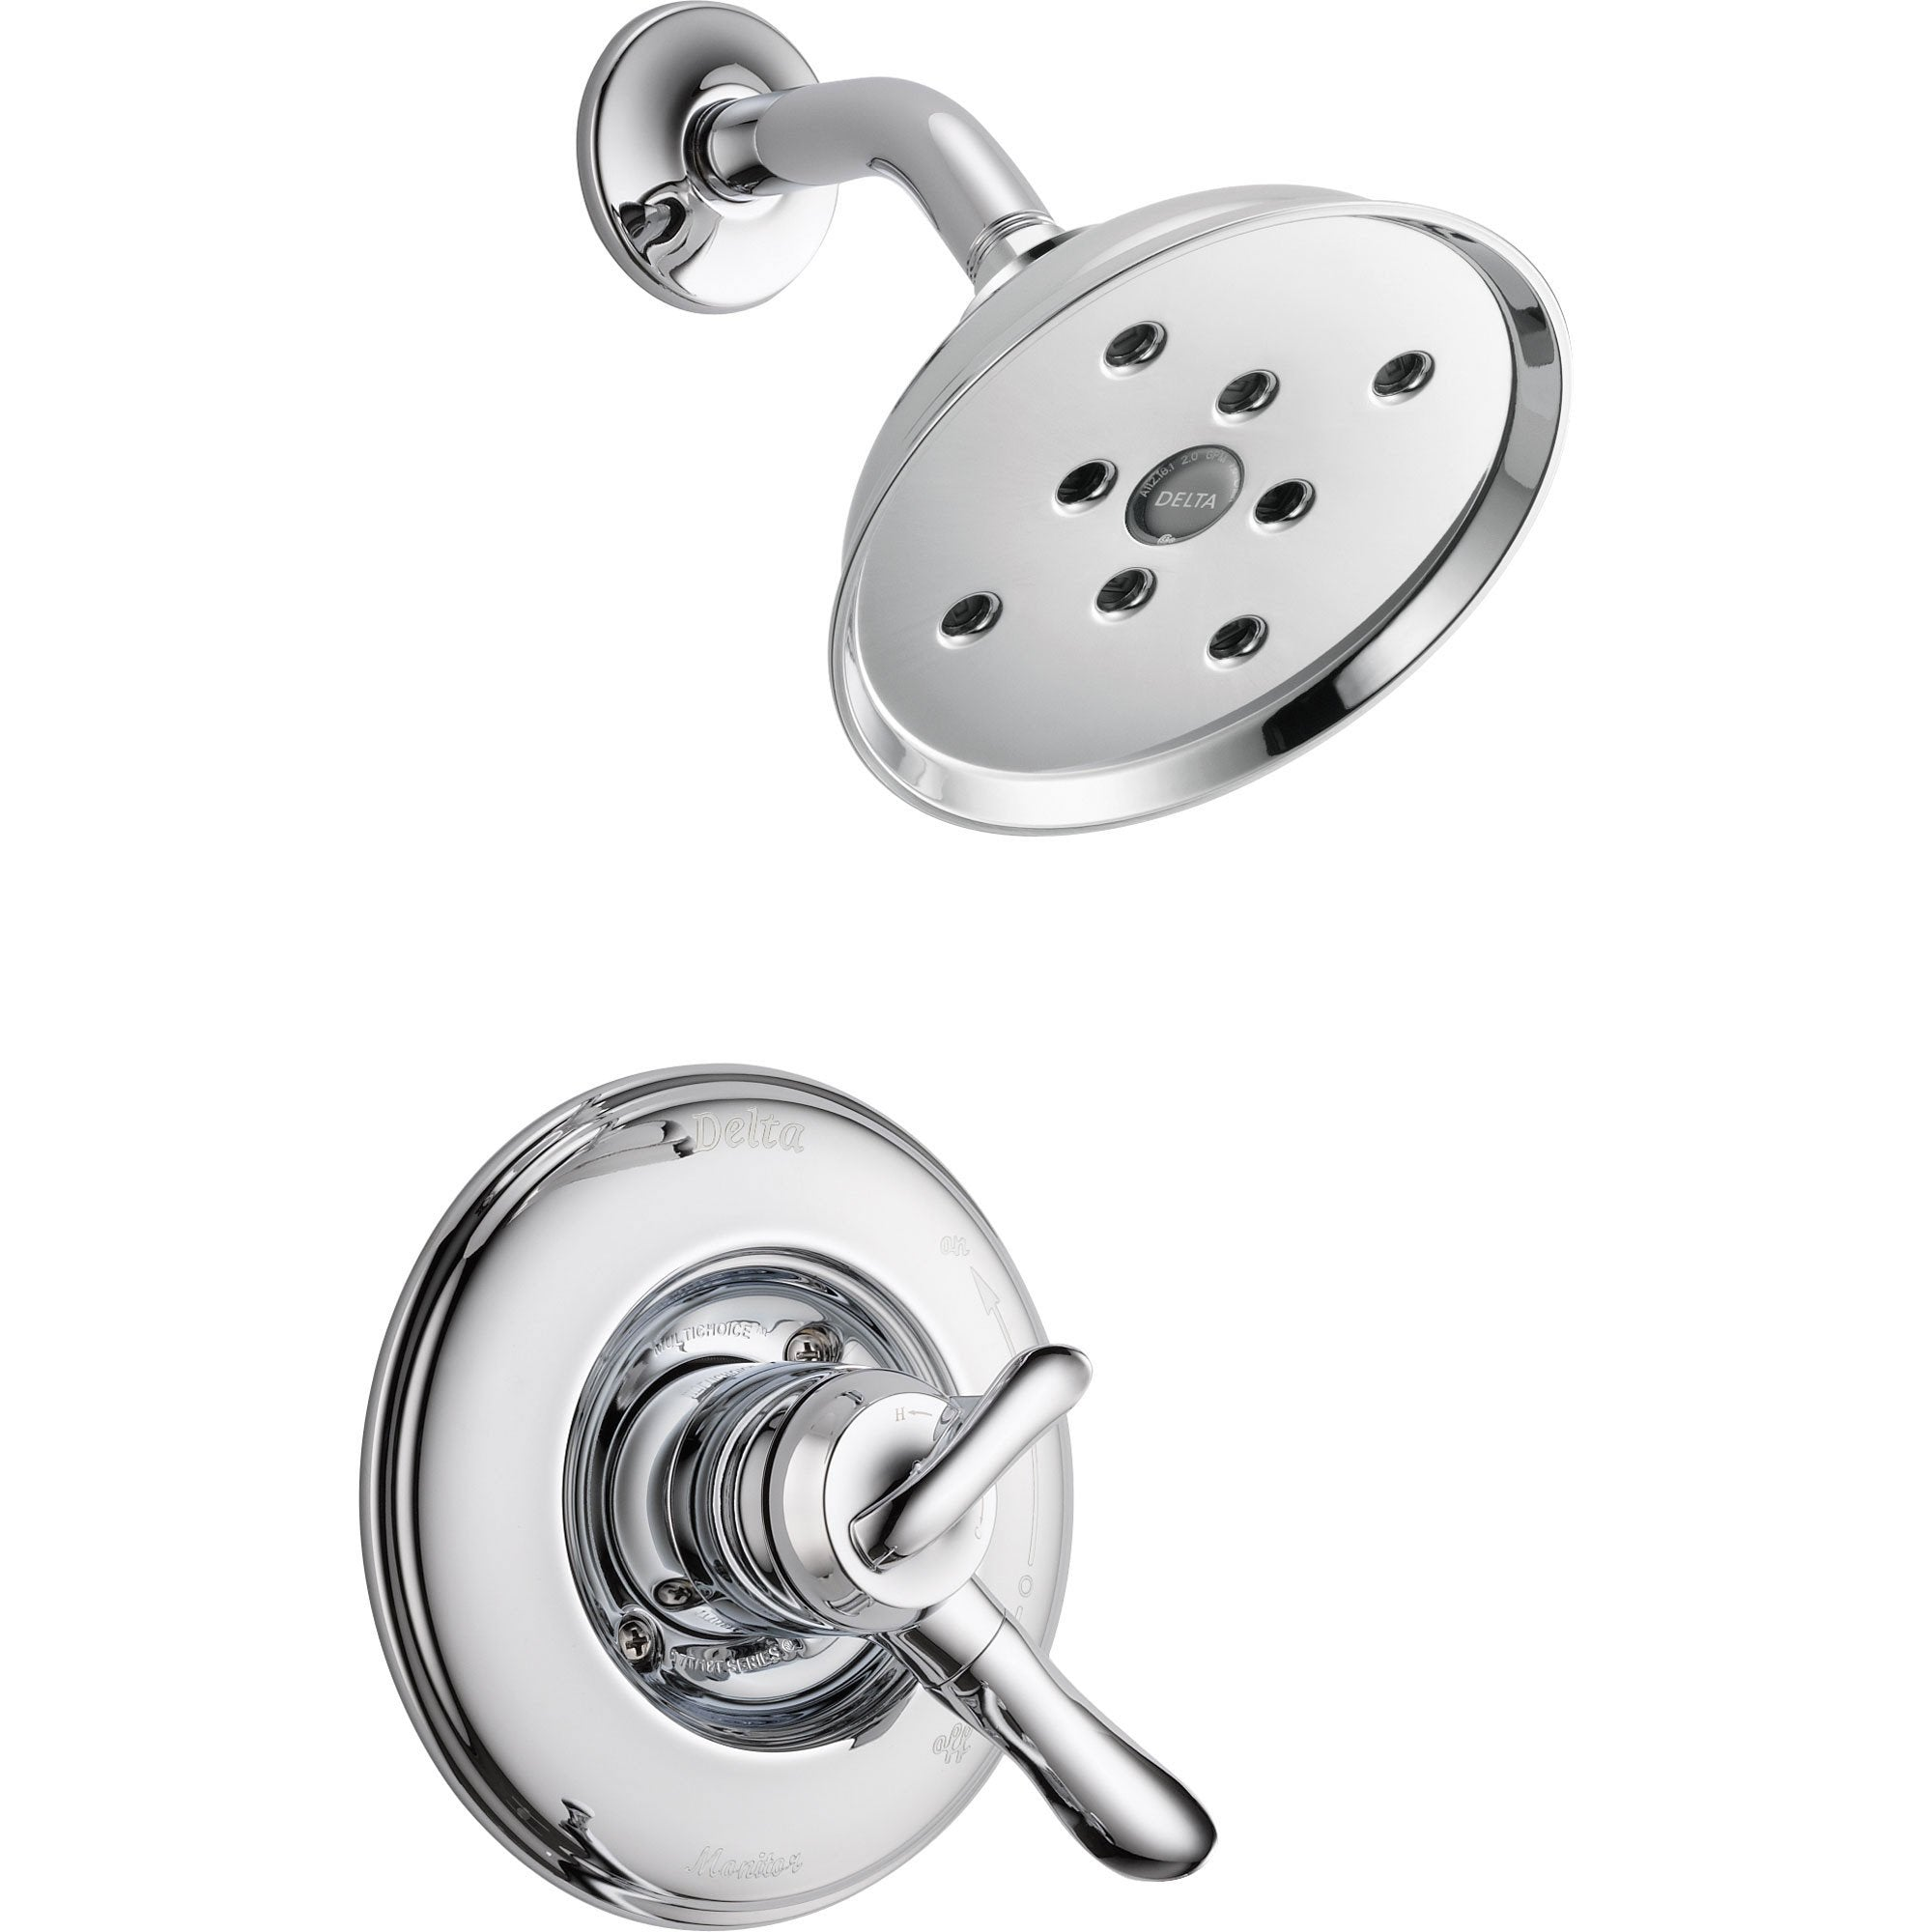 Delta Linden Dual Control Temp/Volume Chrome Shower Faucet with Valve D720V